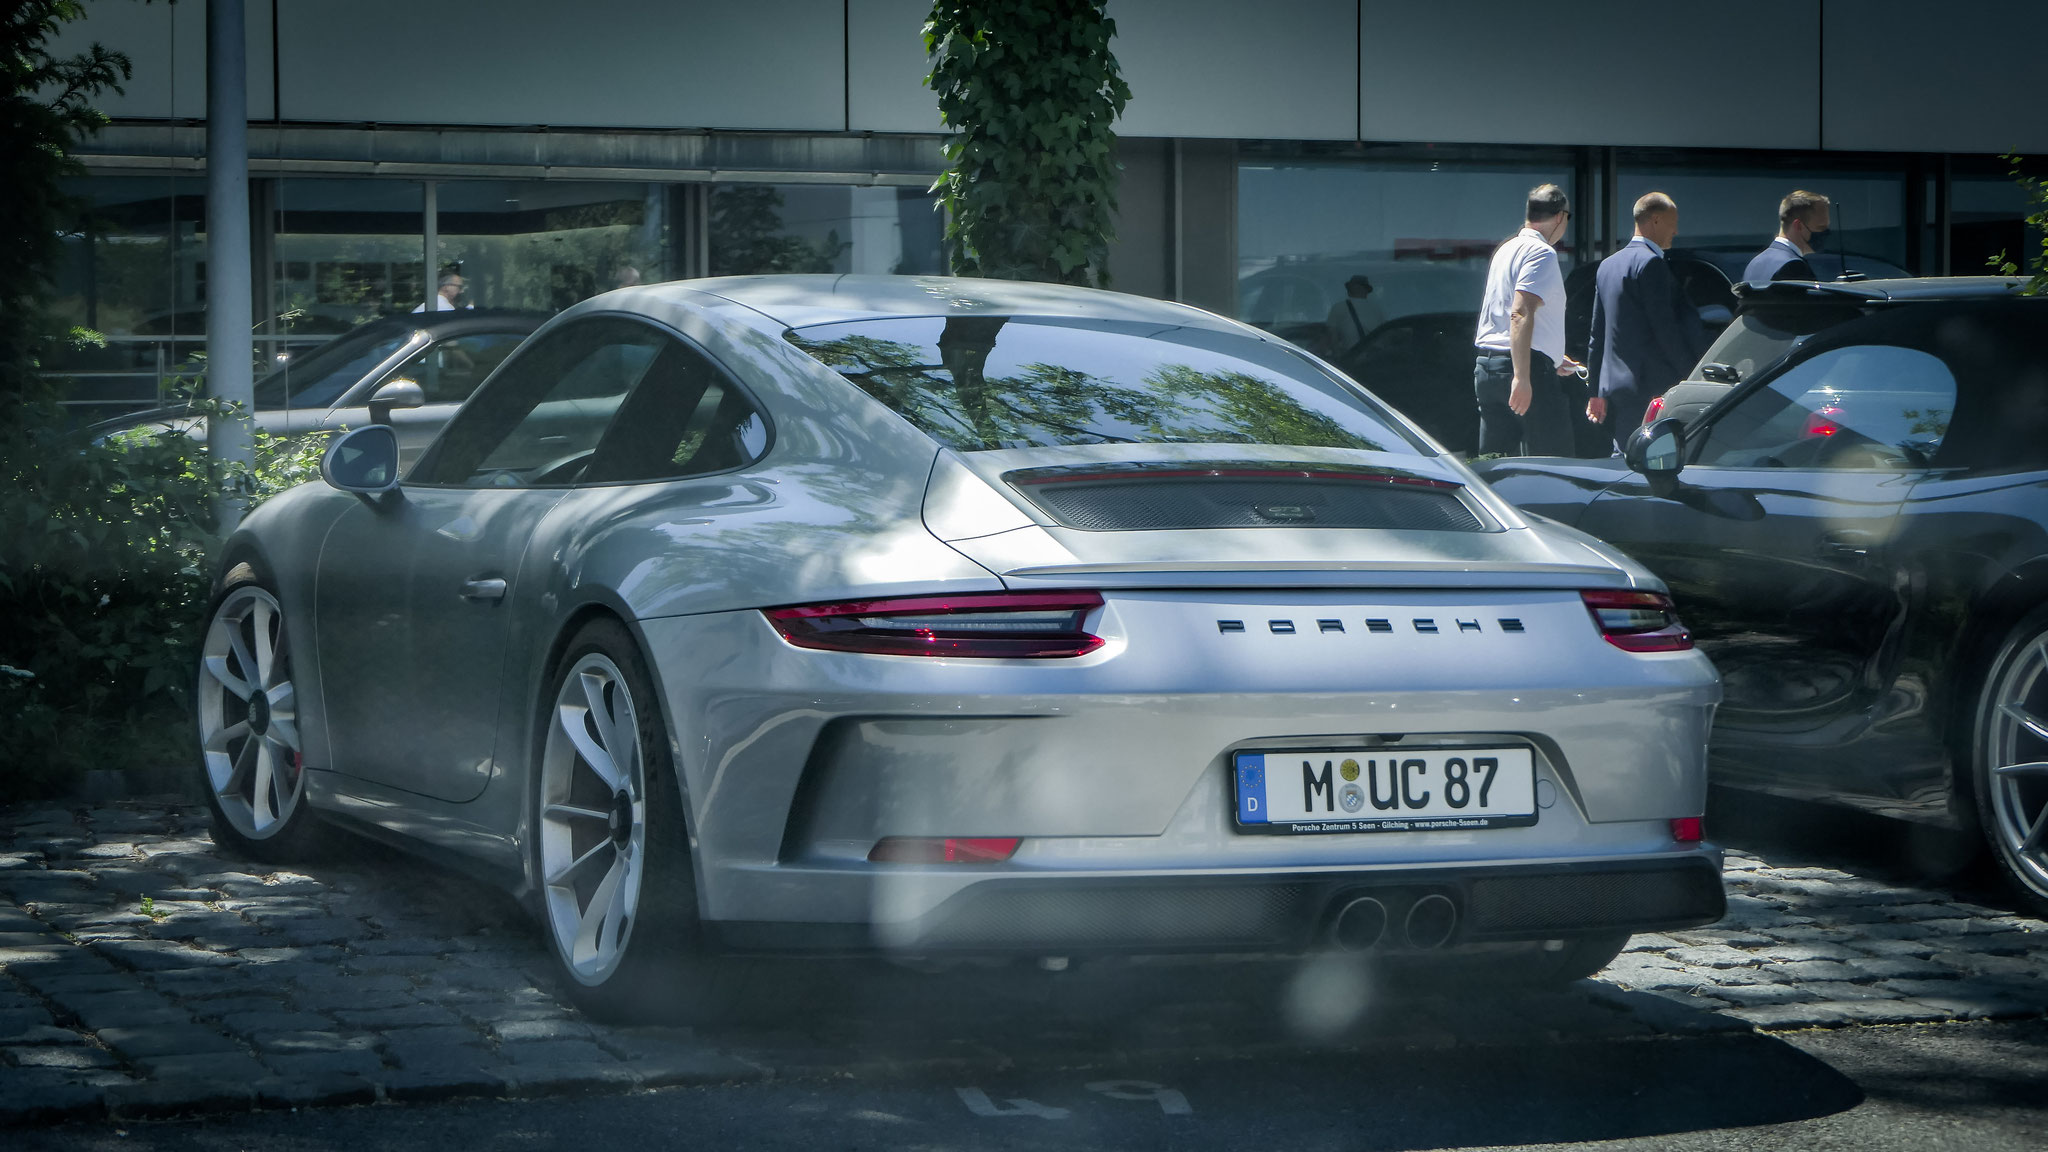 Porsche 991 GT3 Touring Package - M-UC-87